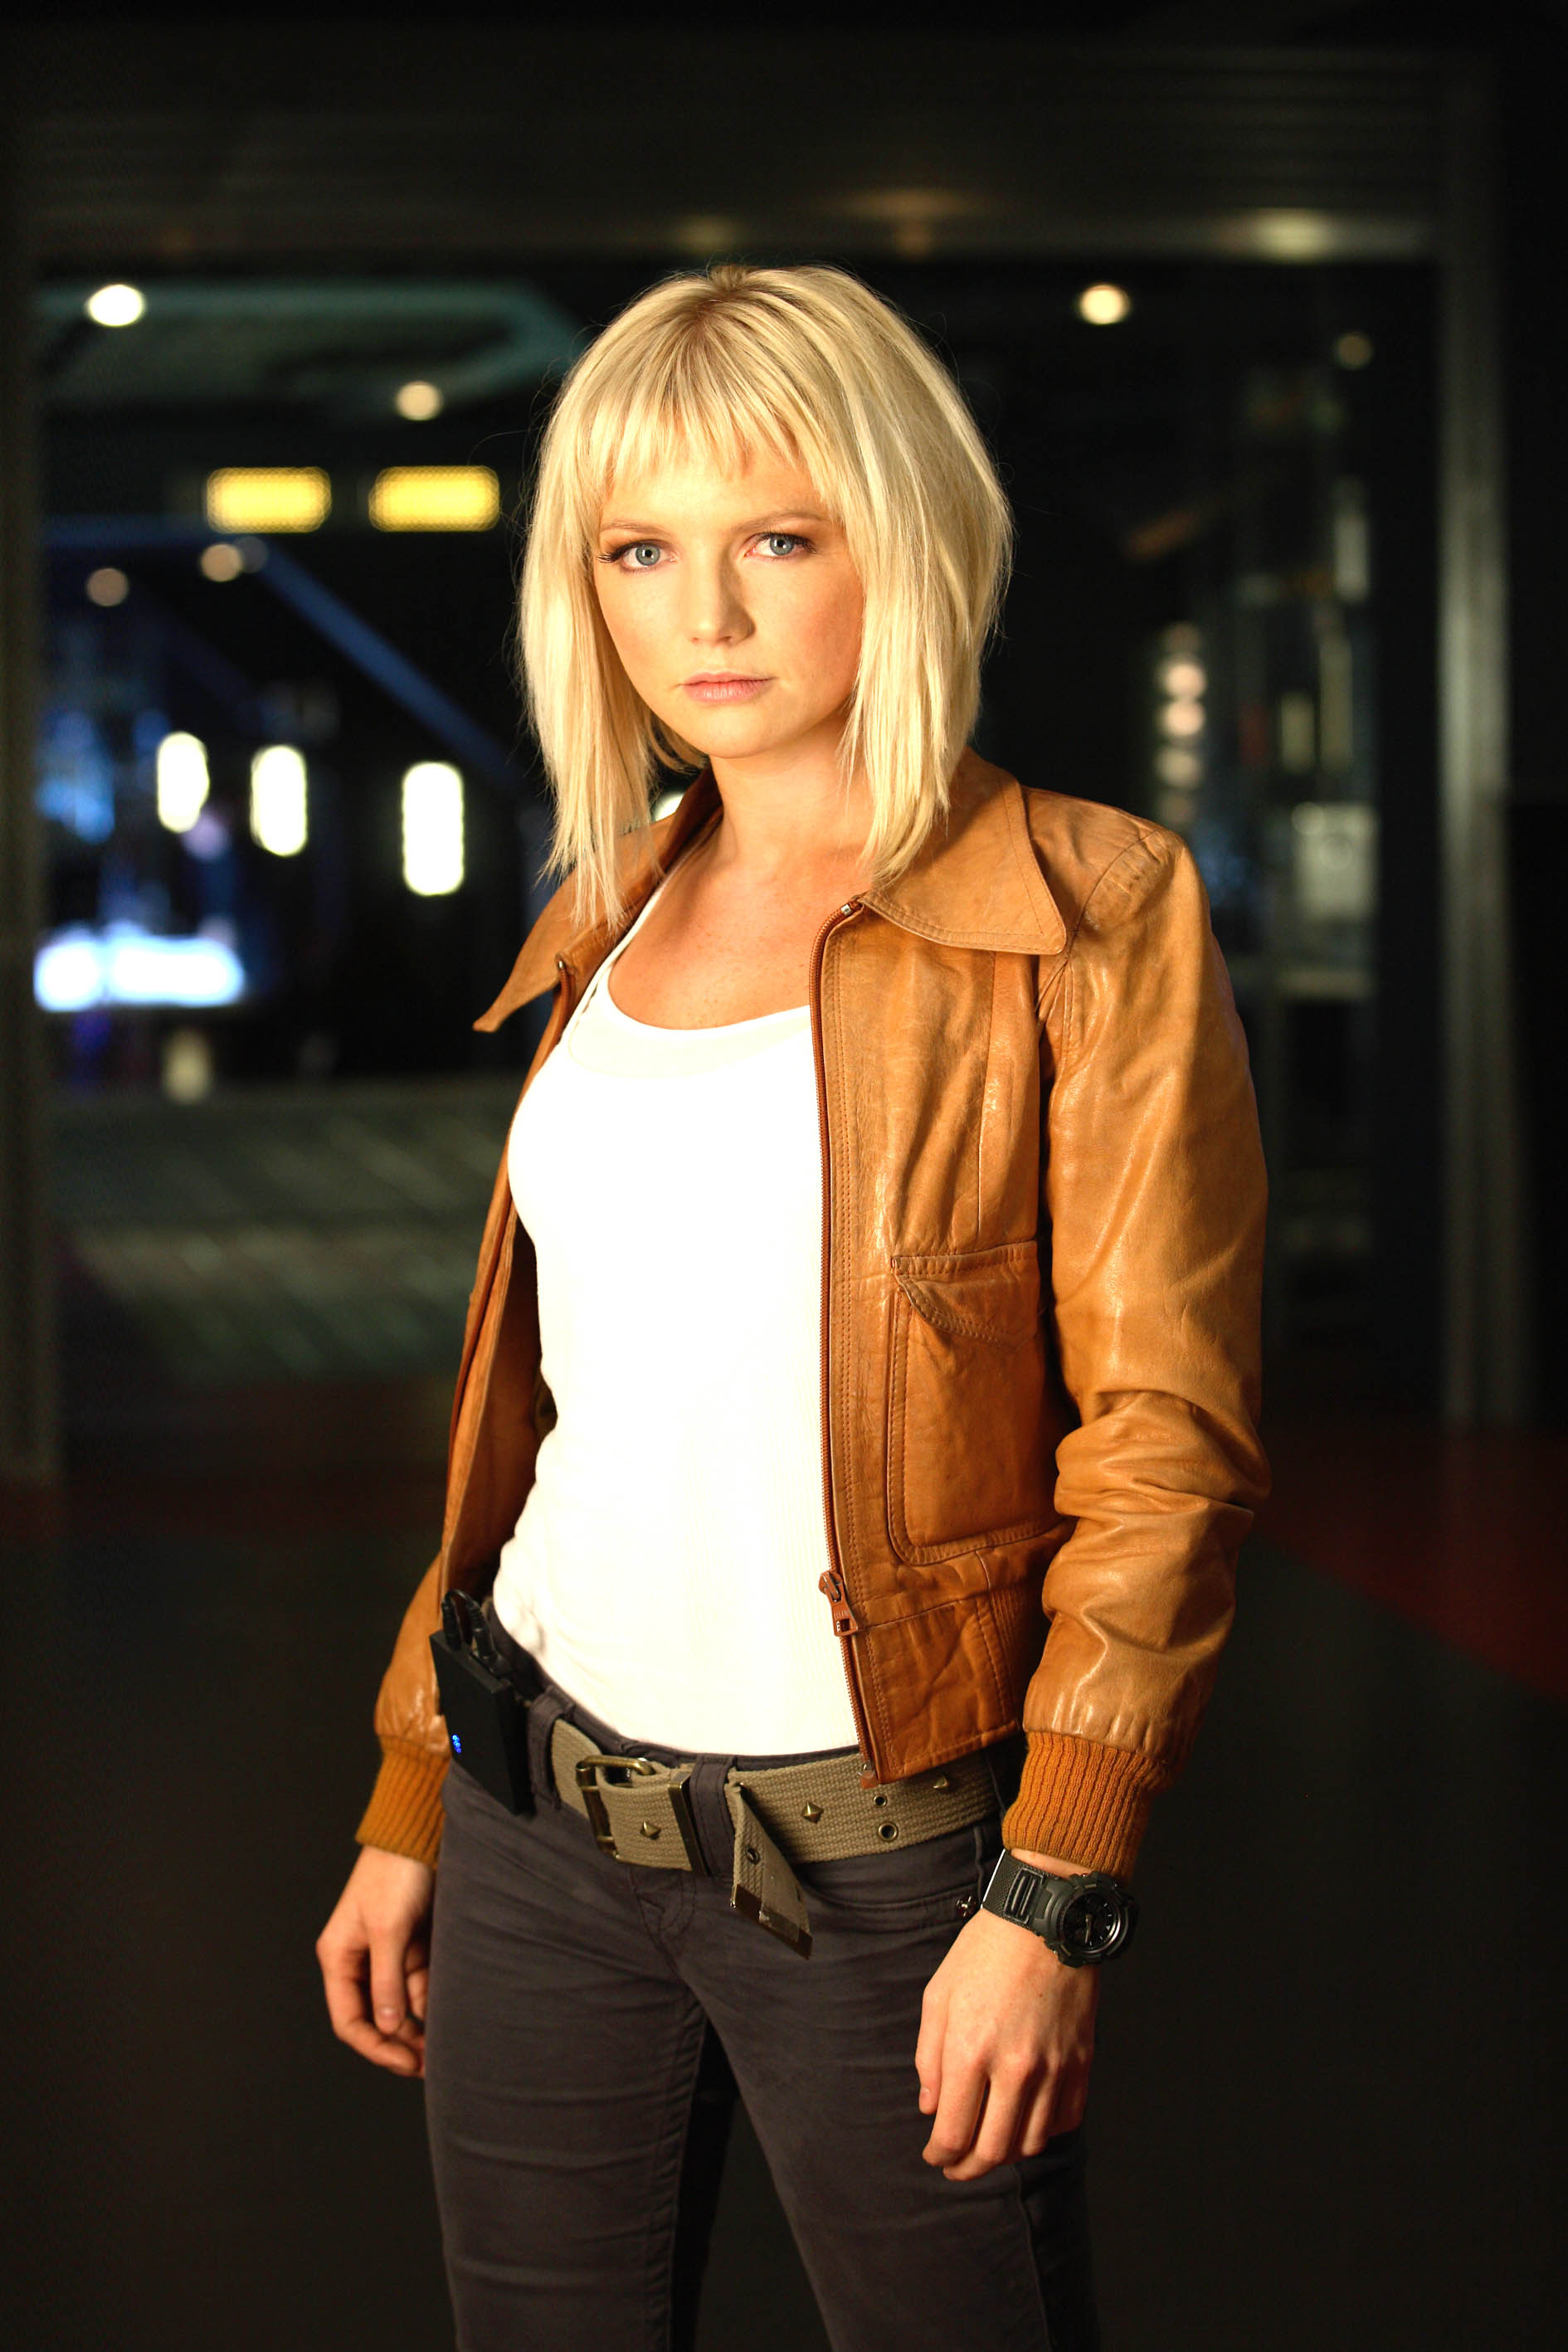 hannah spearritt instagramhannah spearritt imdb, hannah spearritt tumblr, hannah spearritt interview, hannah spearritt instagram, hannah spearritt wiki, hannah spearritt, hannah spearritt and andrew lee potts, hannah spearritt twitter, hannah spearritt and paul cattermole, hannah spearritt 2015, hannah spearritt facebook, hannah spearritt s club 7, hannah spearritt feet, hannah spearritt hot, hannah spearritt casualty, hannah spearritt boyfriend, hannah spearritt net worth, hannah spearritt bikini, hannah spearritt and paul